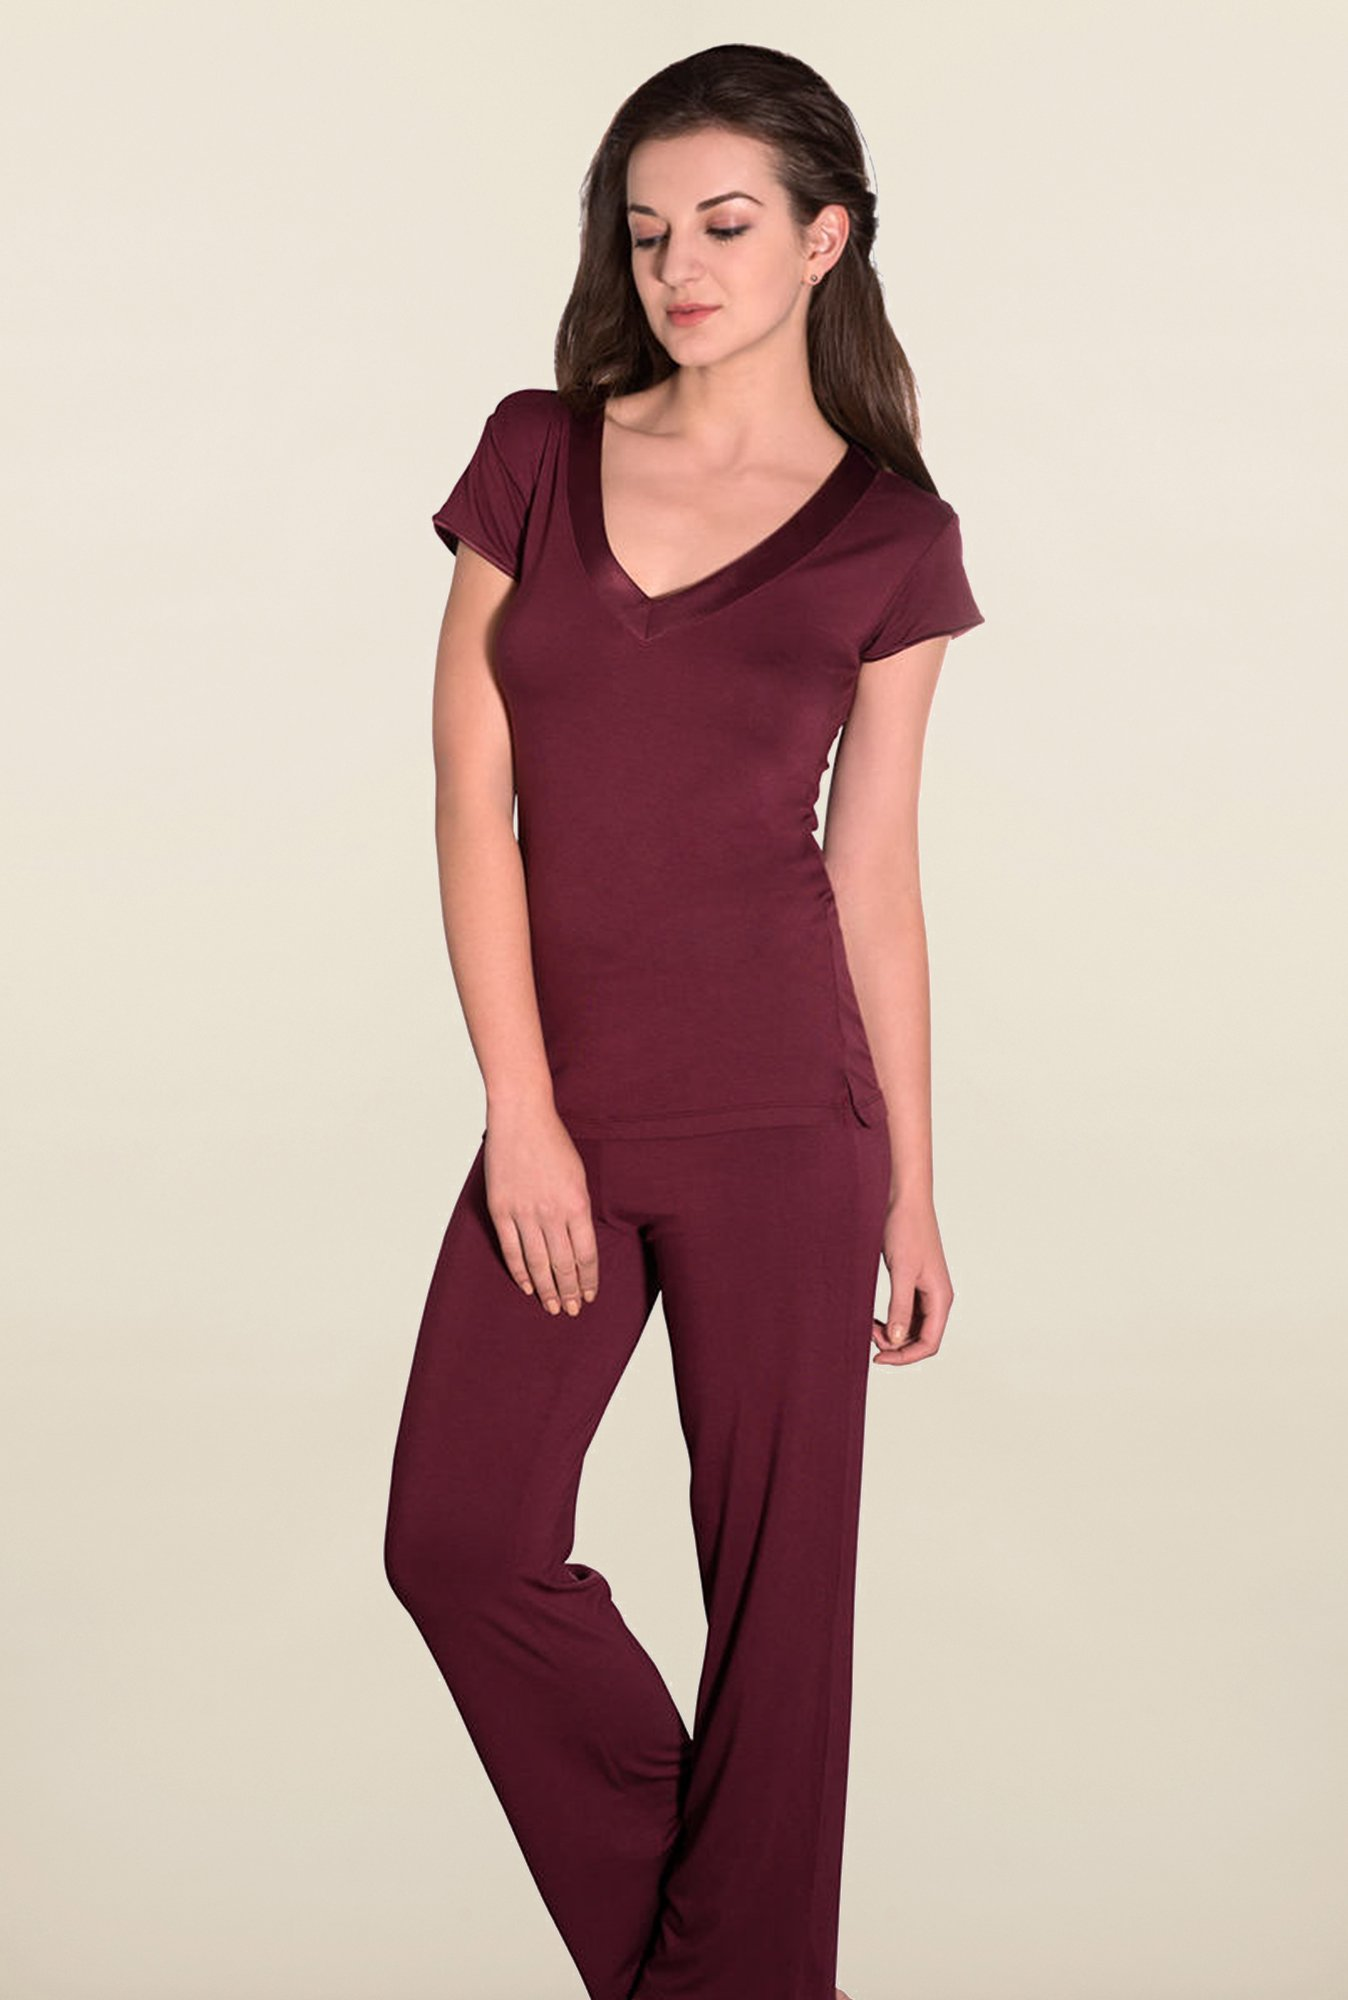 Amante Maroon Solid Sleep Tees